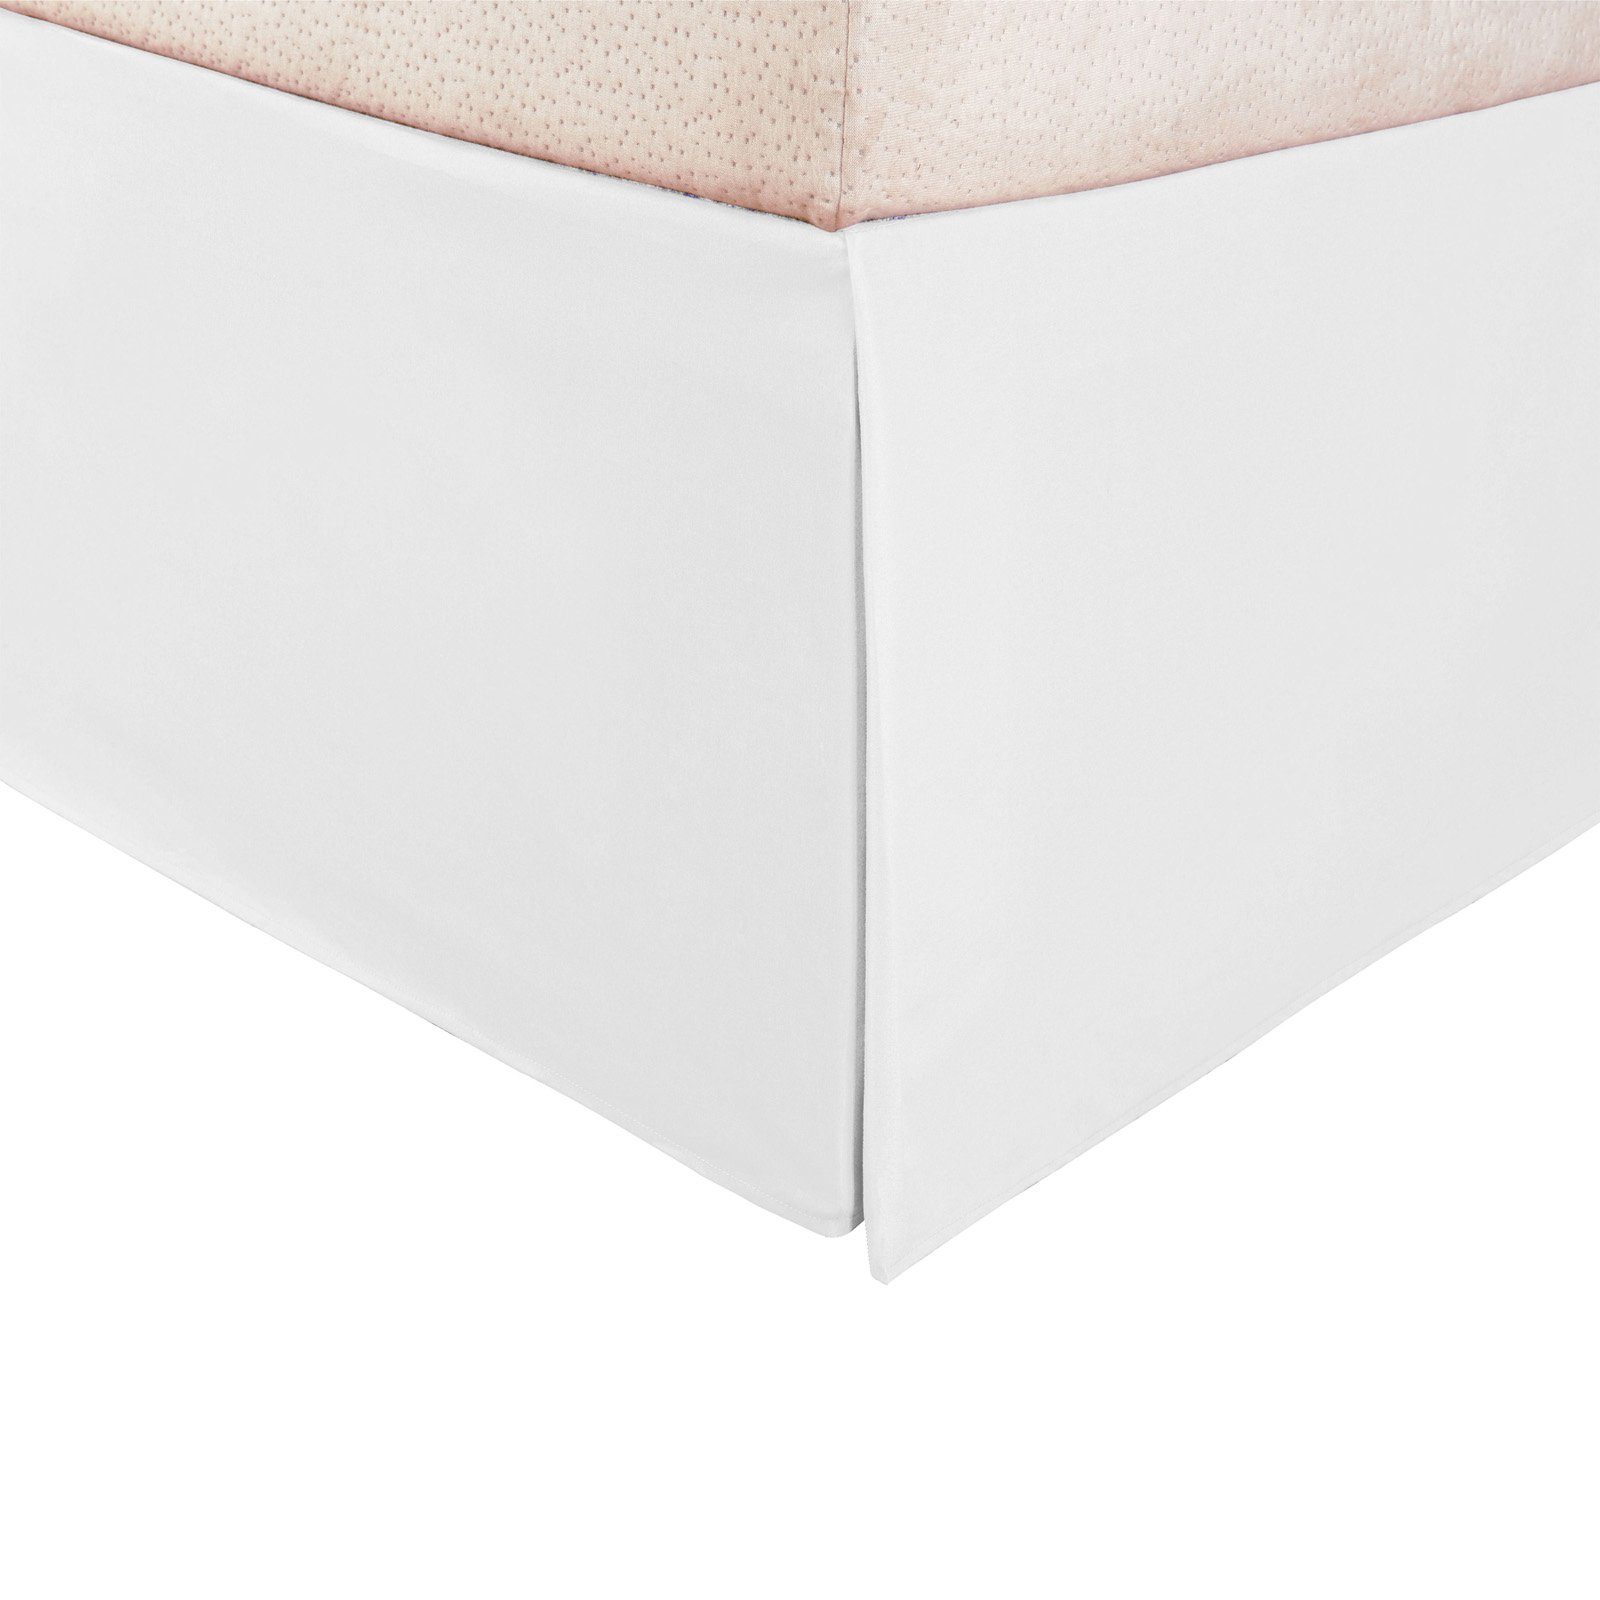 Superior 1500 Series Microfiber Pleated, Wrinkle Resistant, Platform Solid Bedskirt with... by Home City Inc